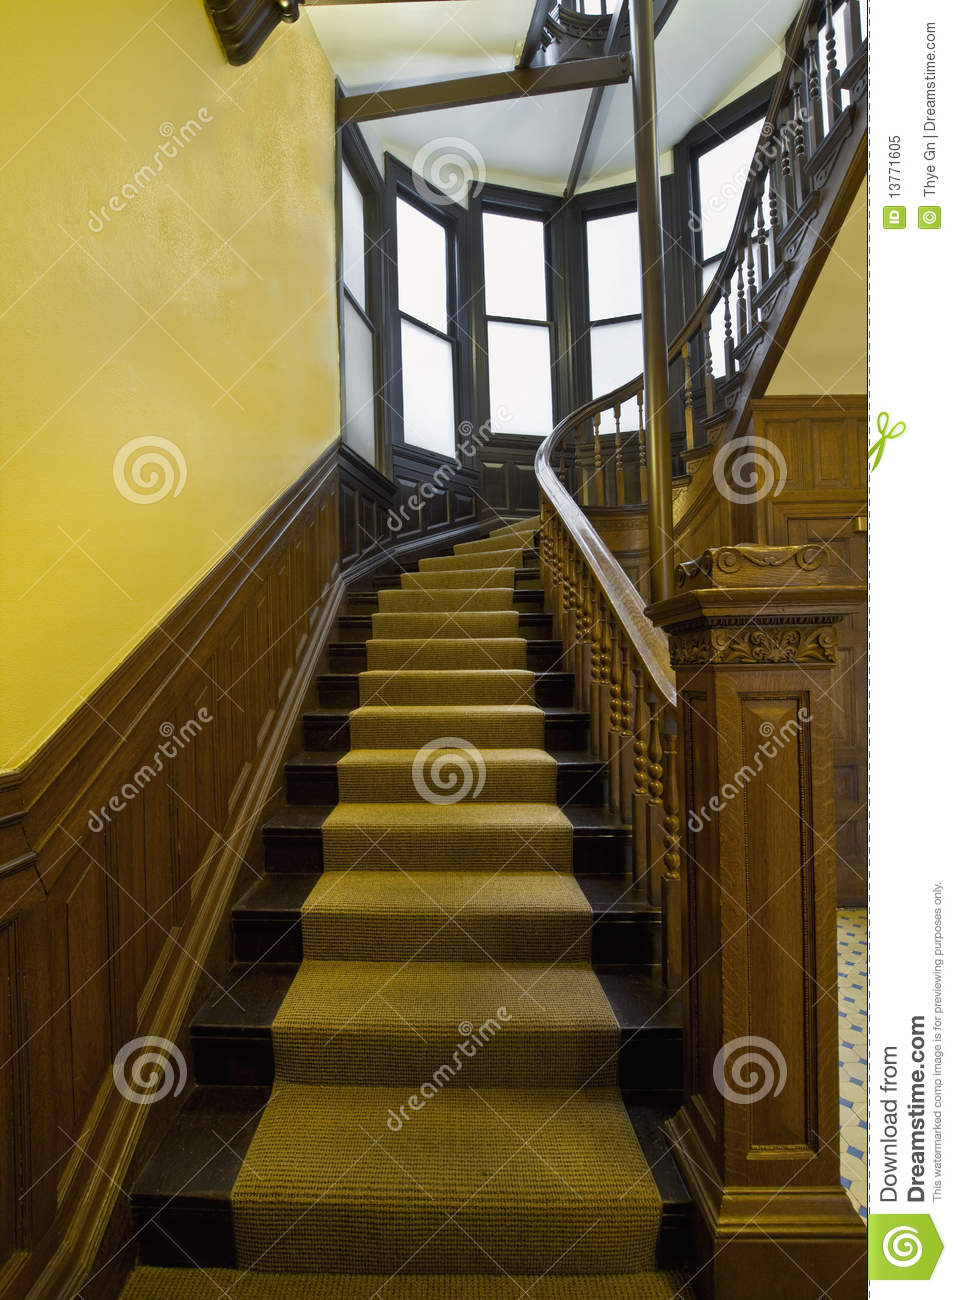 how to clean old in stairs